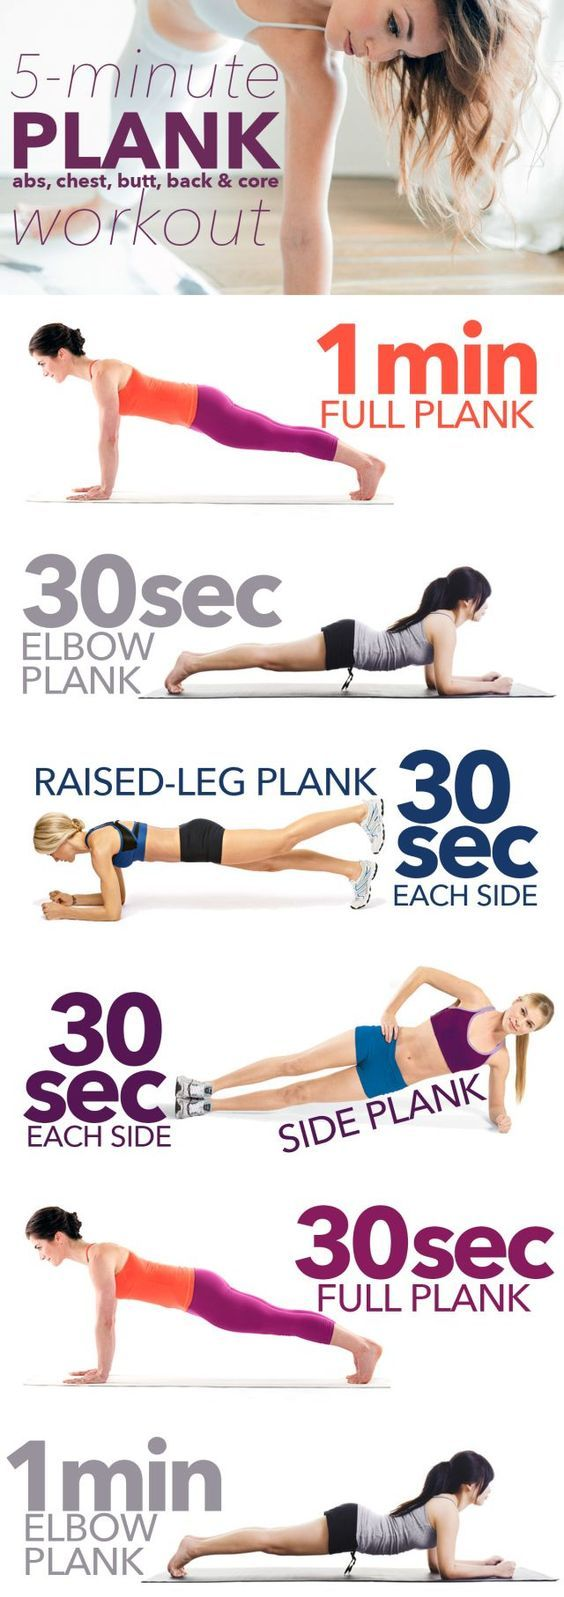 Planks are a great way to build strength and hardness in the mid section. If you want a sexy flat stomach with rock hard abs you NEED to build up your plank and hit it from all angles so you also have sexy obliques! This is a great 5 minute workout that'll have you sweating and your stomach burning!